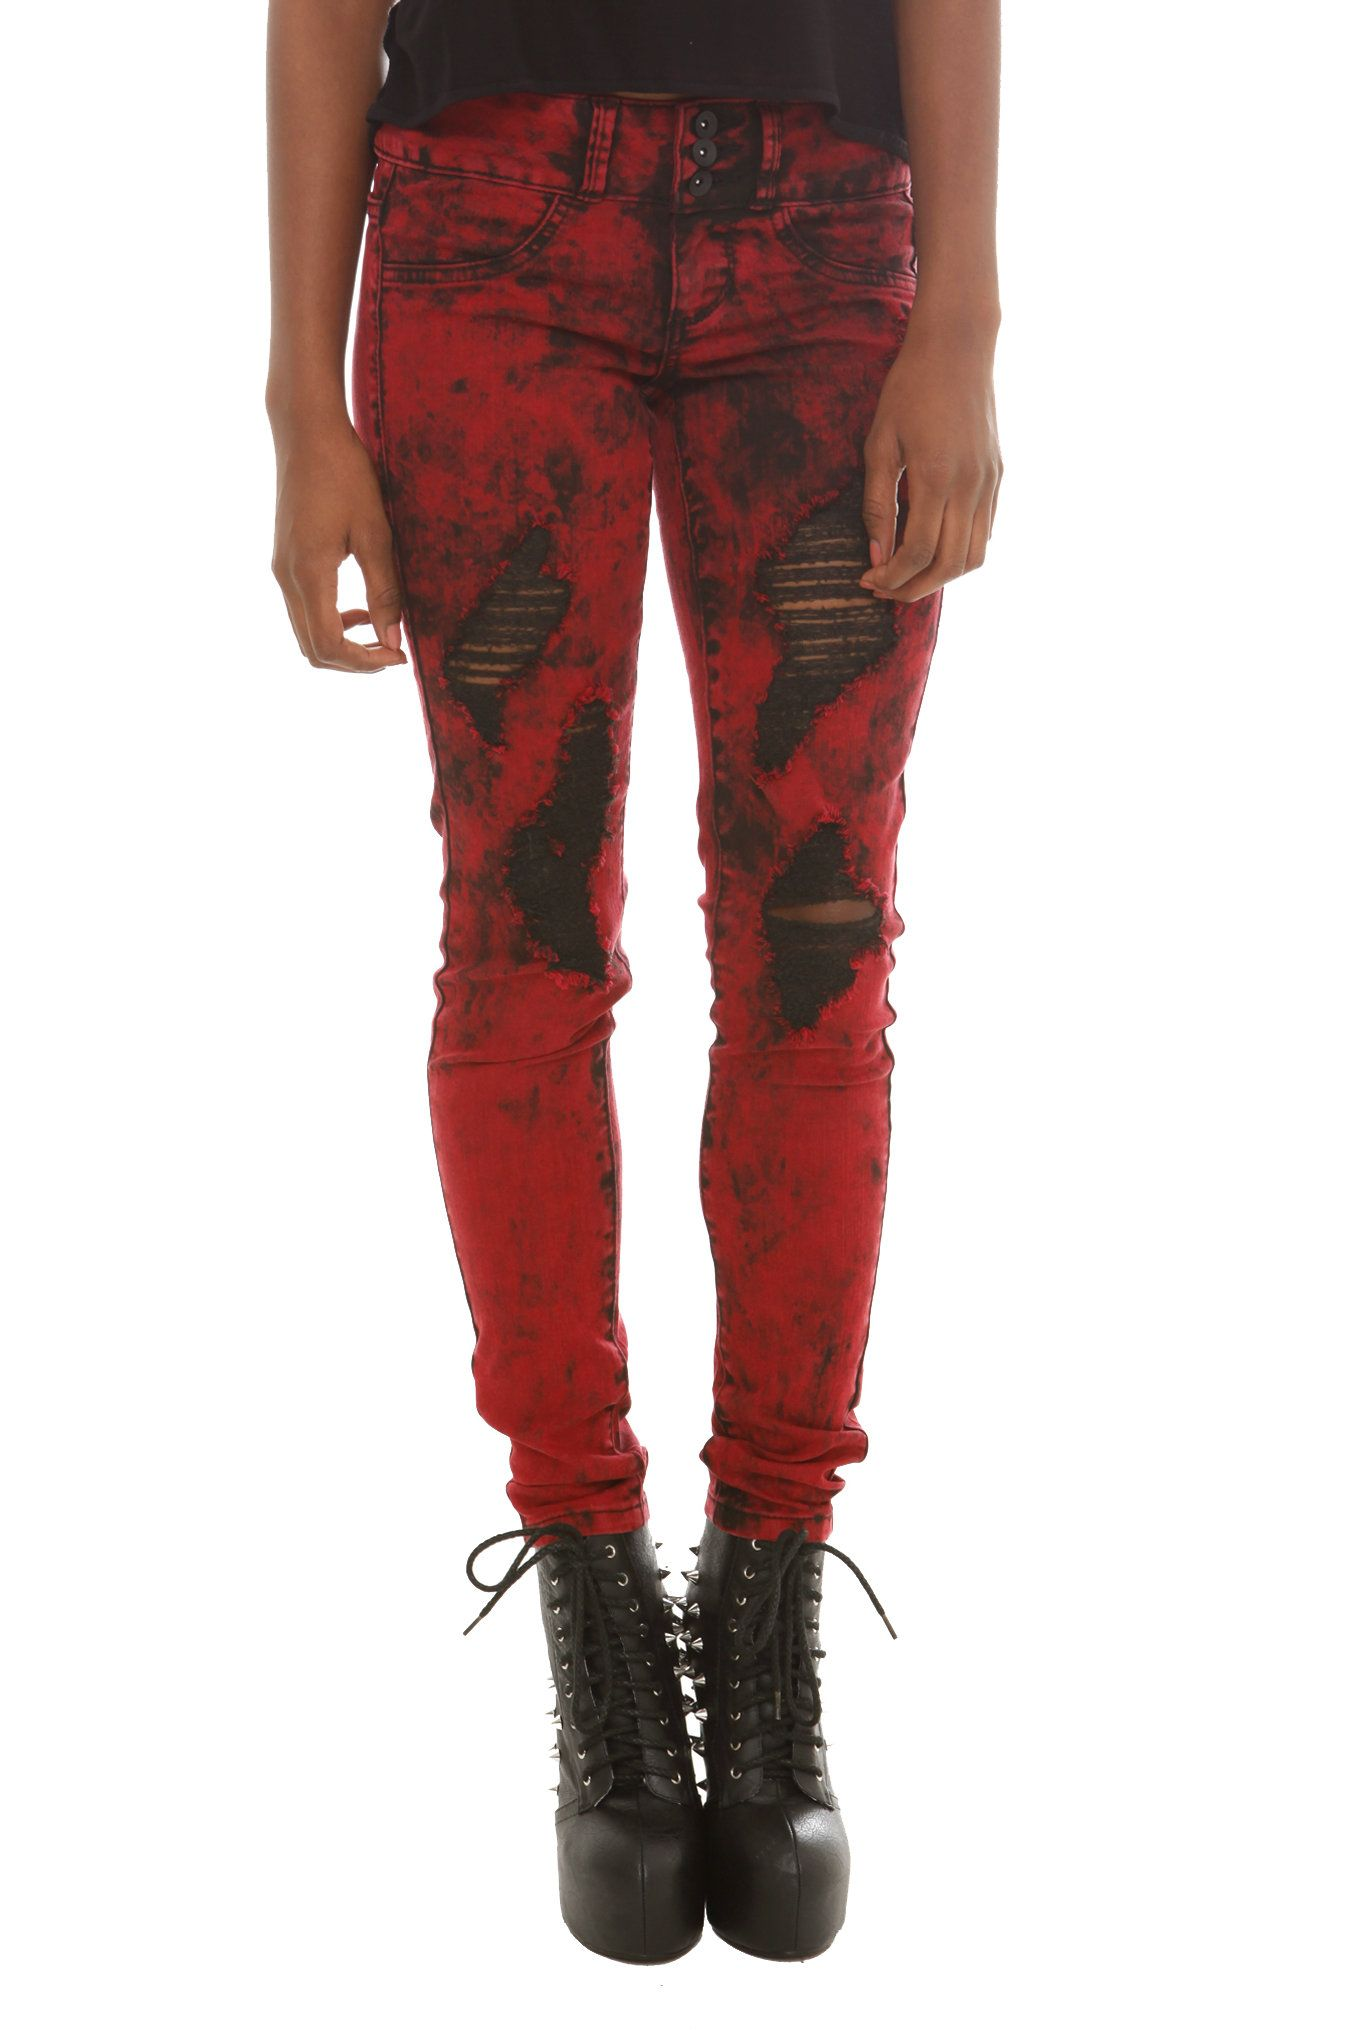 LOVEsick Red Cruella Super Skinny Jeans | Hot Topic | Clothes Envy ...